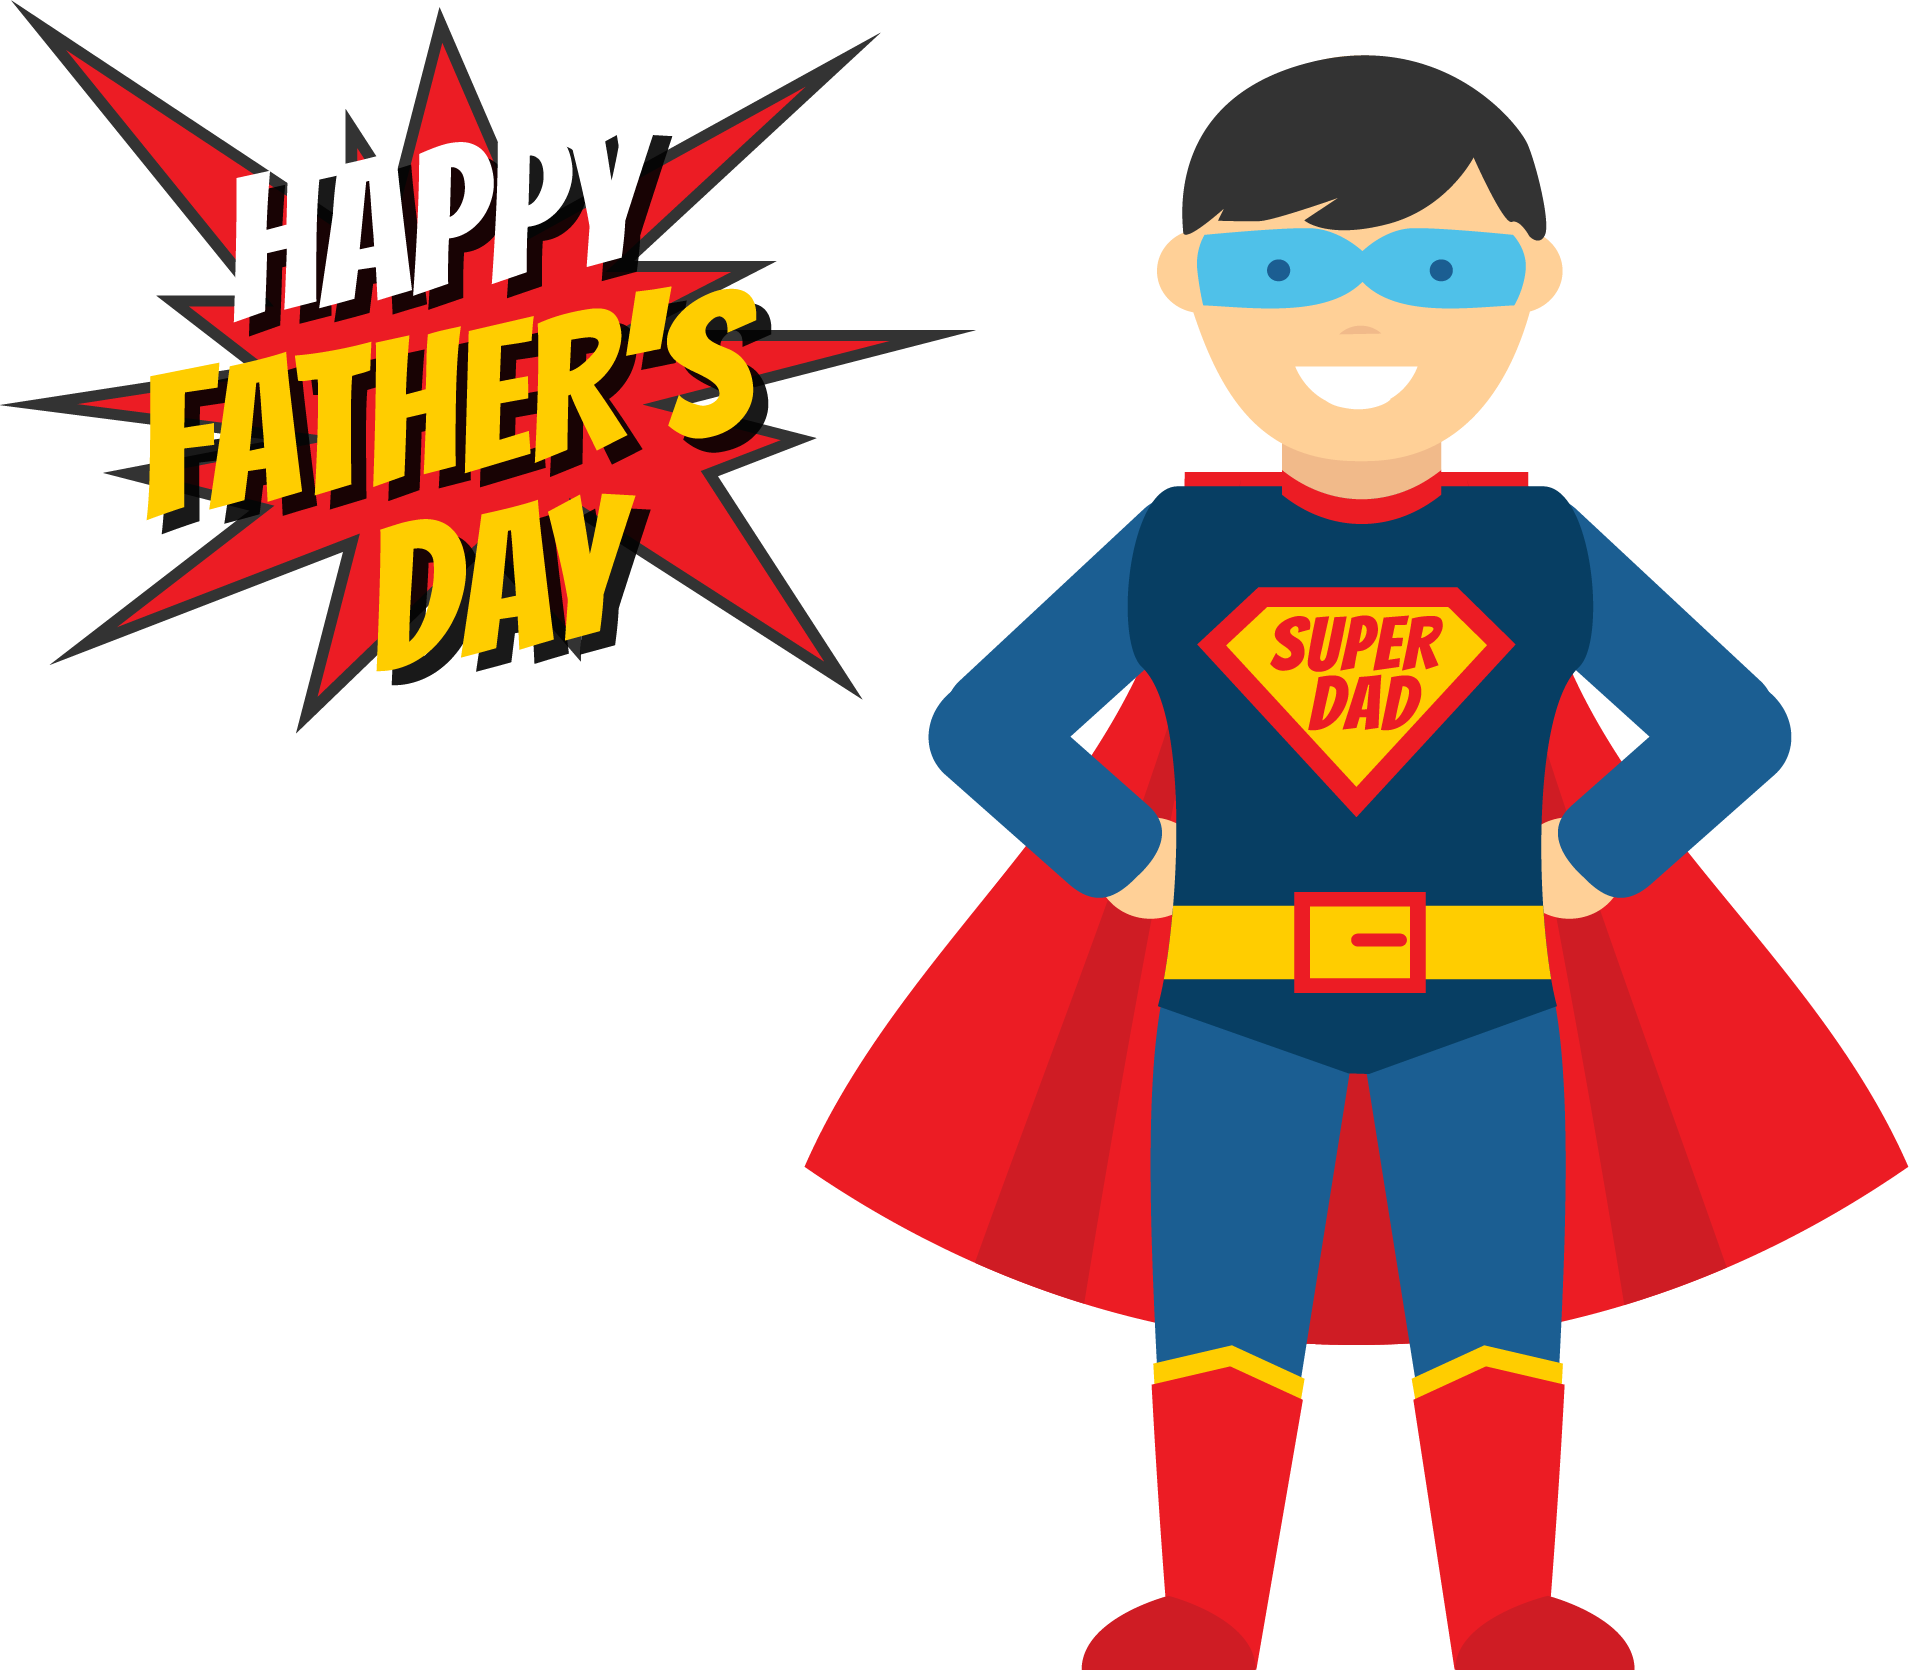 Halloween superheroes clipart free download Fathers Day Superhero Illustration - My superman daddy 1909*1670 ... free download